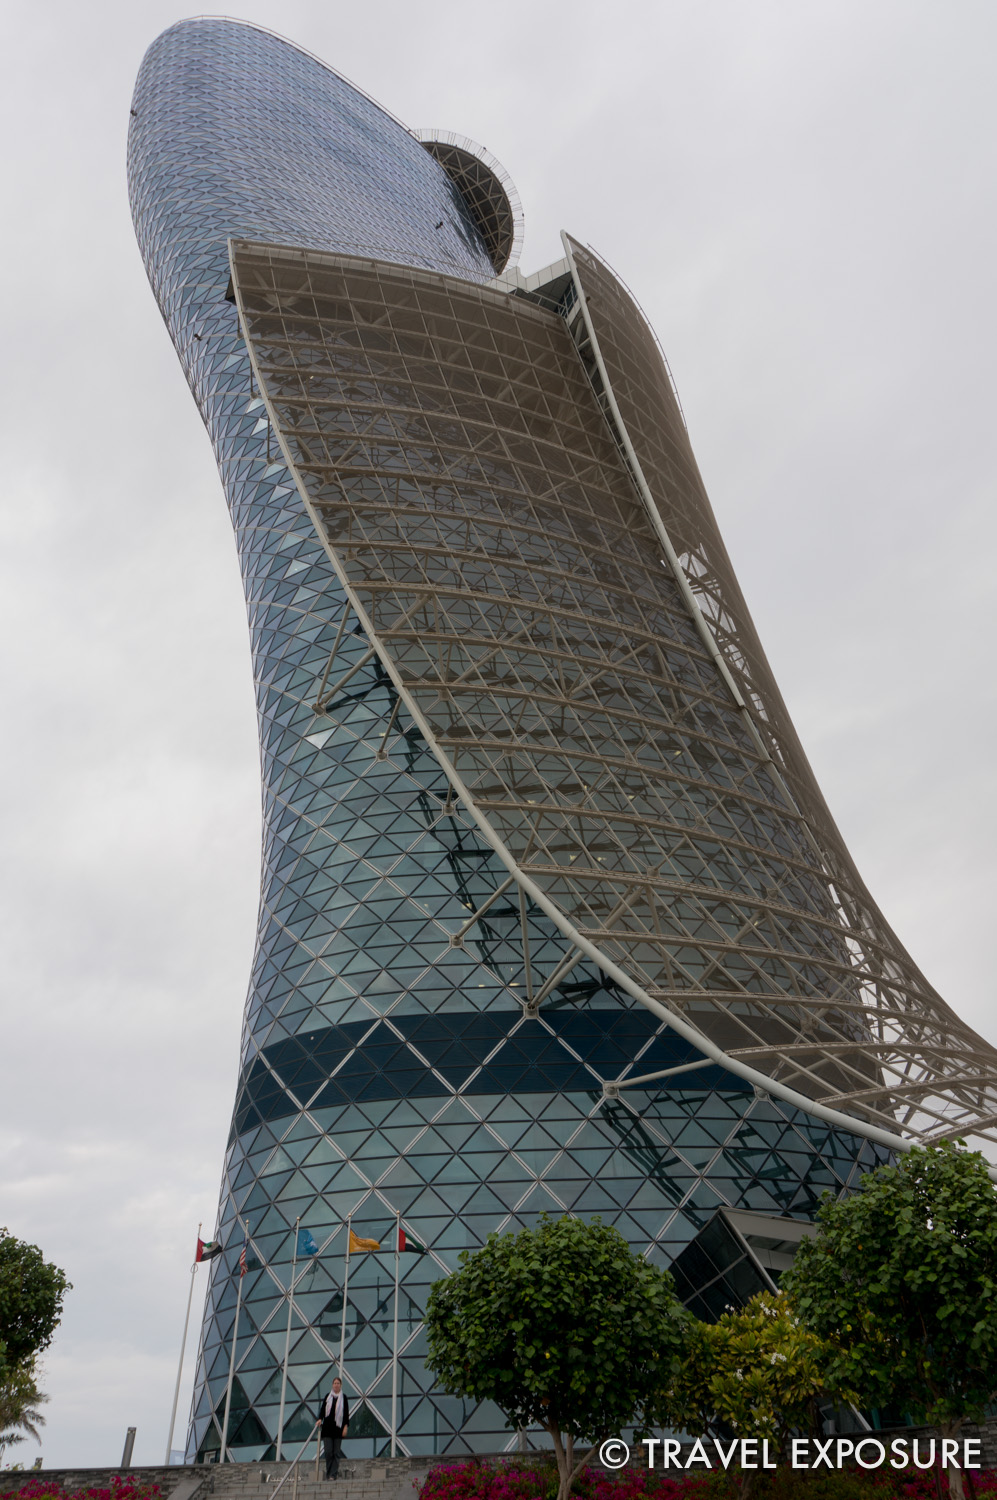 The Capital Gate building in Abu Dhabi leans an astounding 18 degrees.